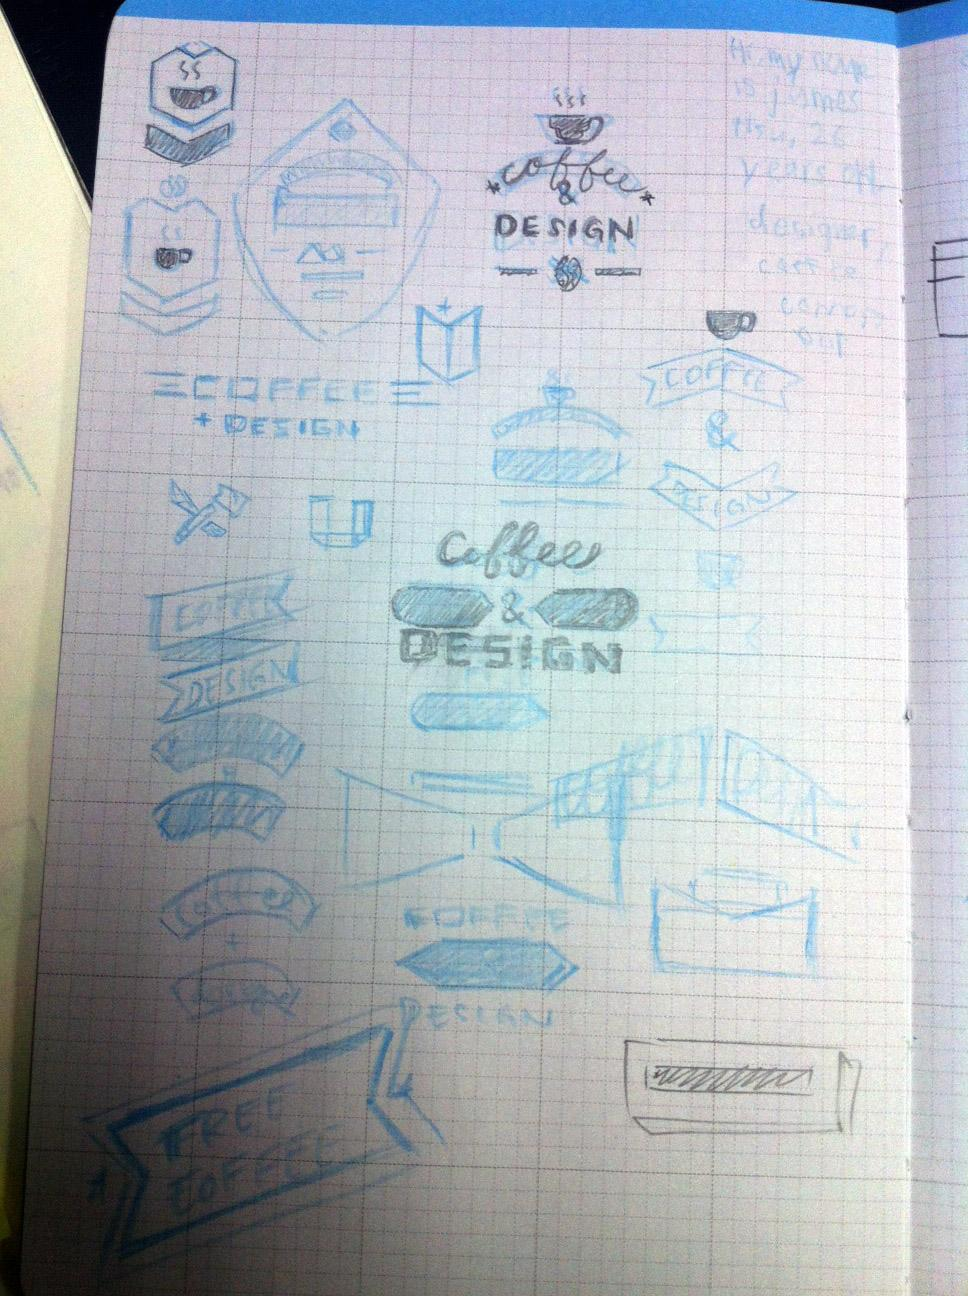 Coffee & Design - image 3 - student project